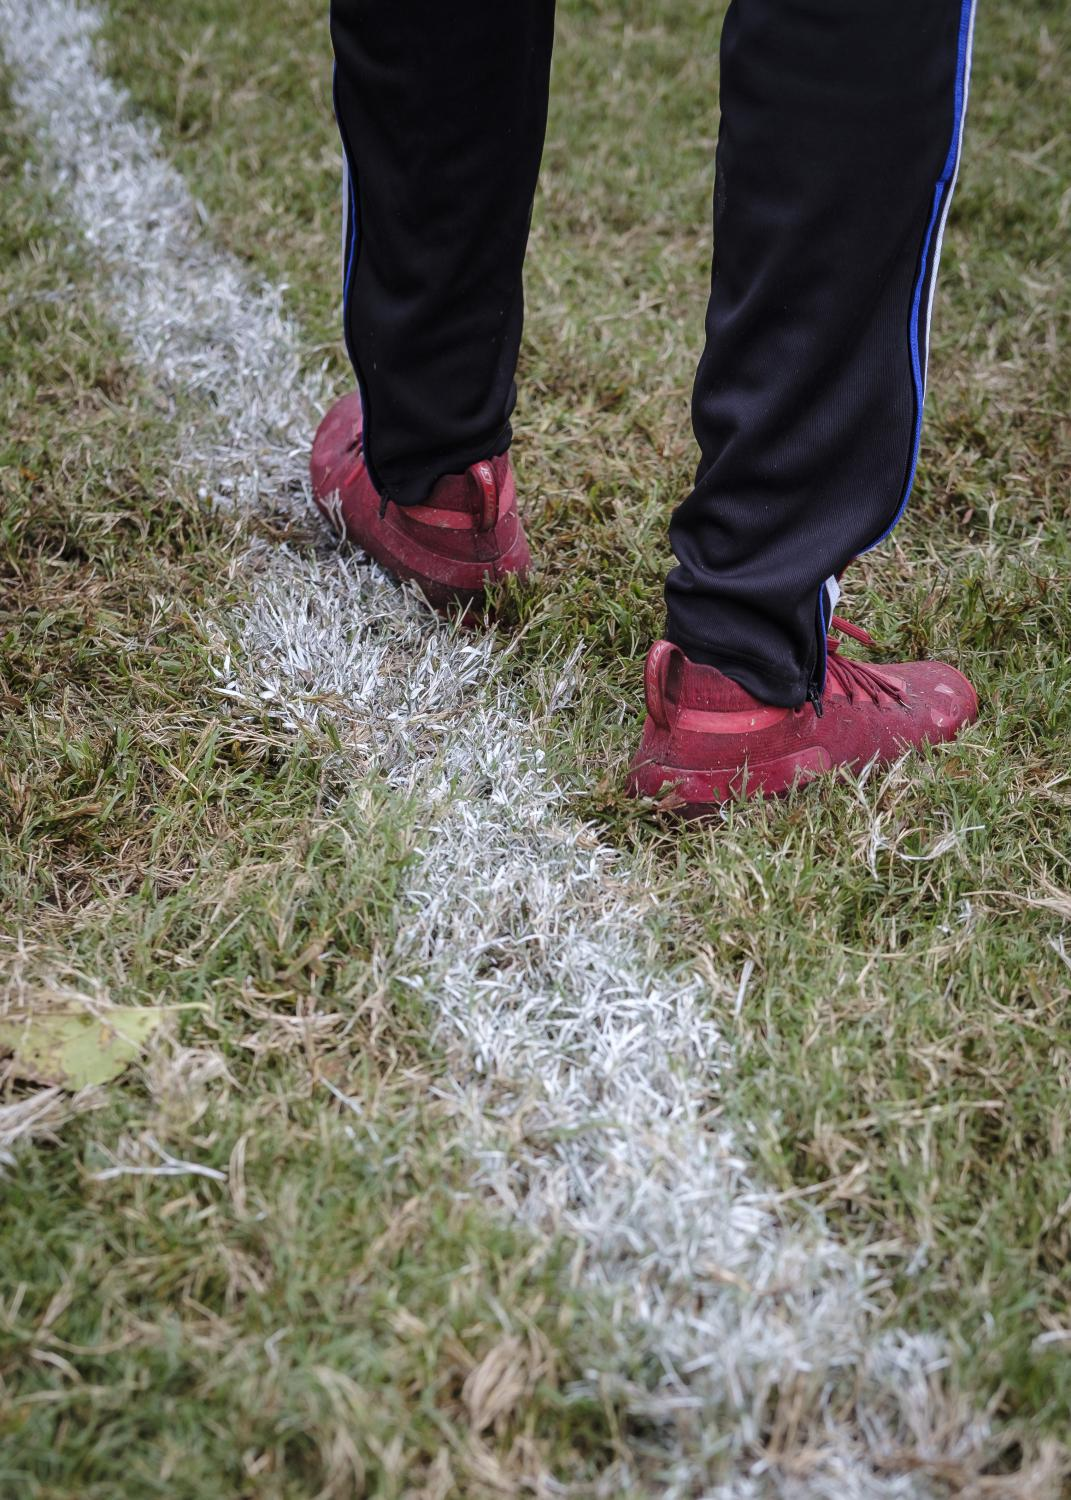 NORFOLK, VA – October 29, 2020: Jeff Foster detail of his cleats during football practice. Jeff is a member of the Lake Taylor High School TITANS. Due to the COVID-19 pandemic, football games were canceled at Lake Taylor High School in Norfolk, VA, but weekly practice are still going on. Carlos Bernate / The Undefeated